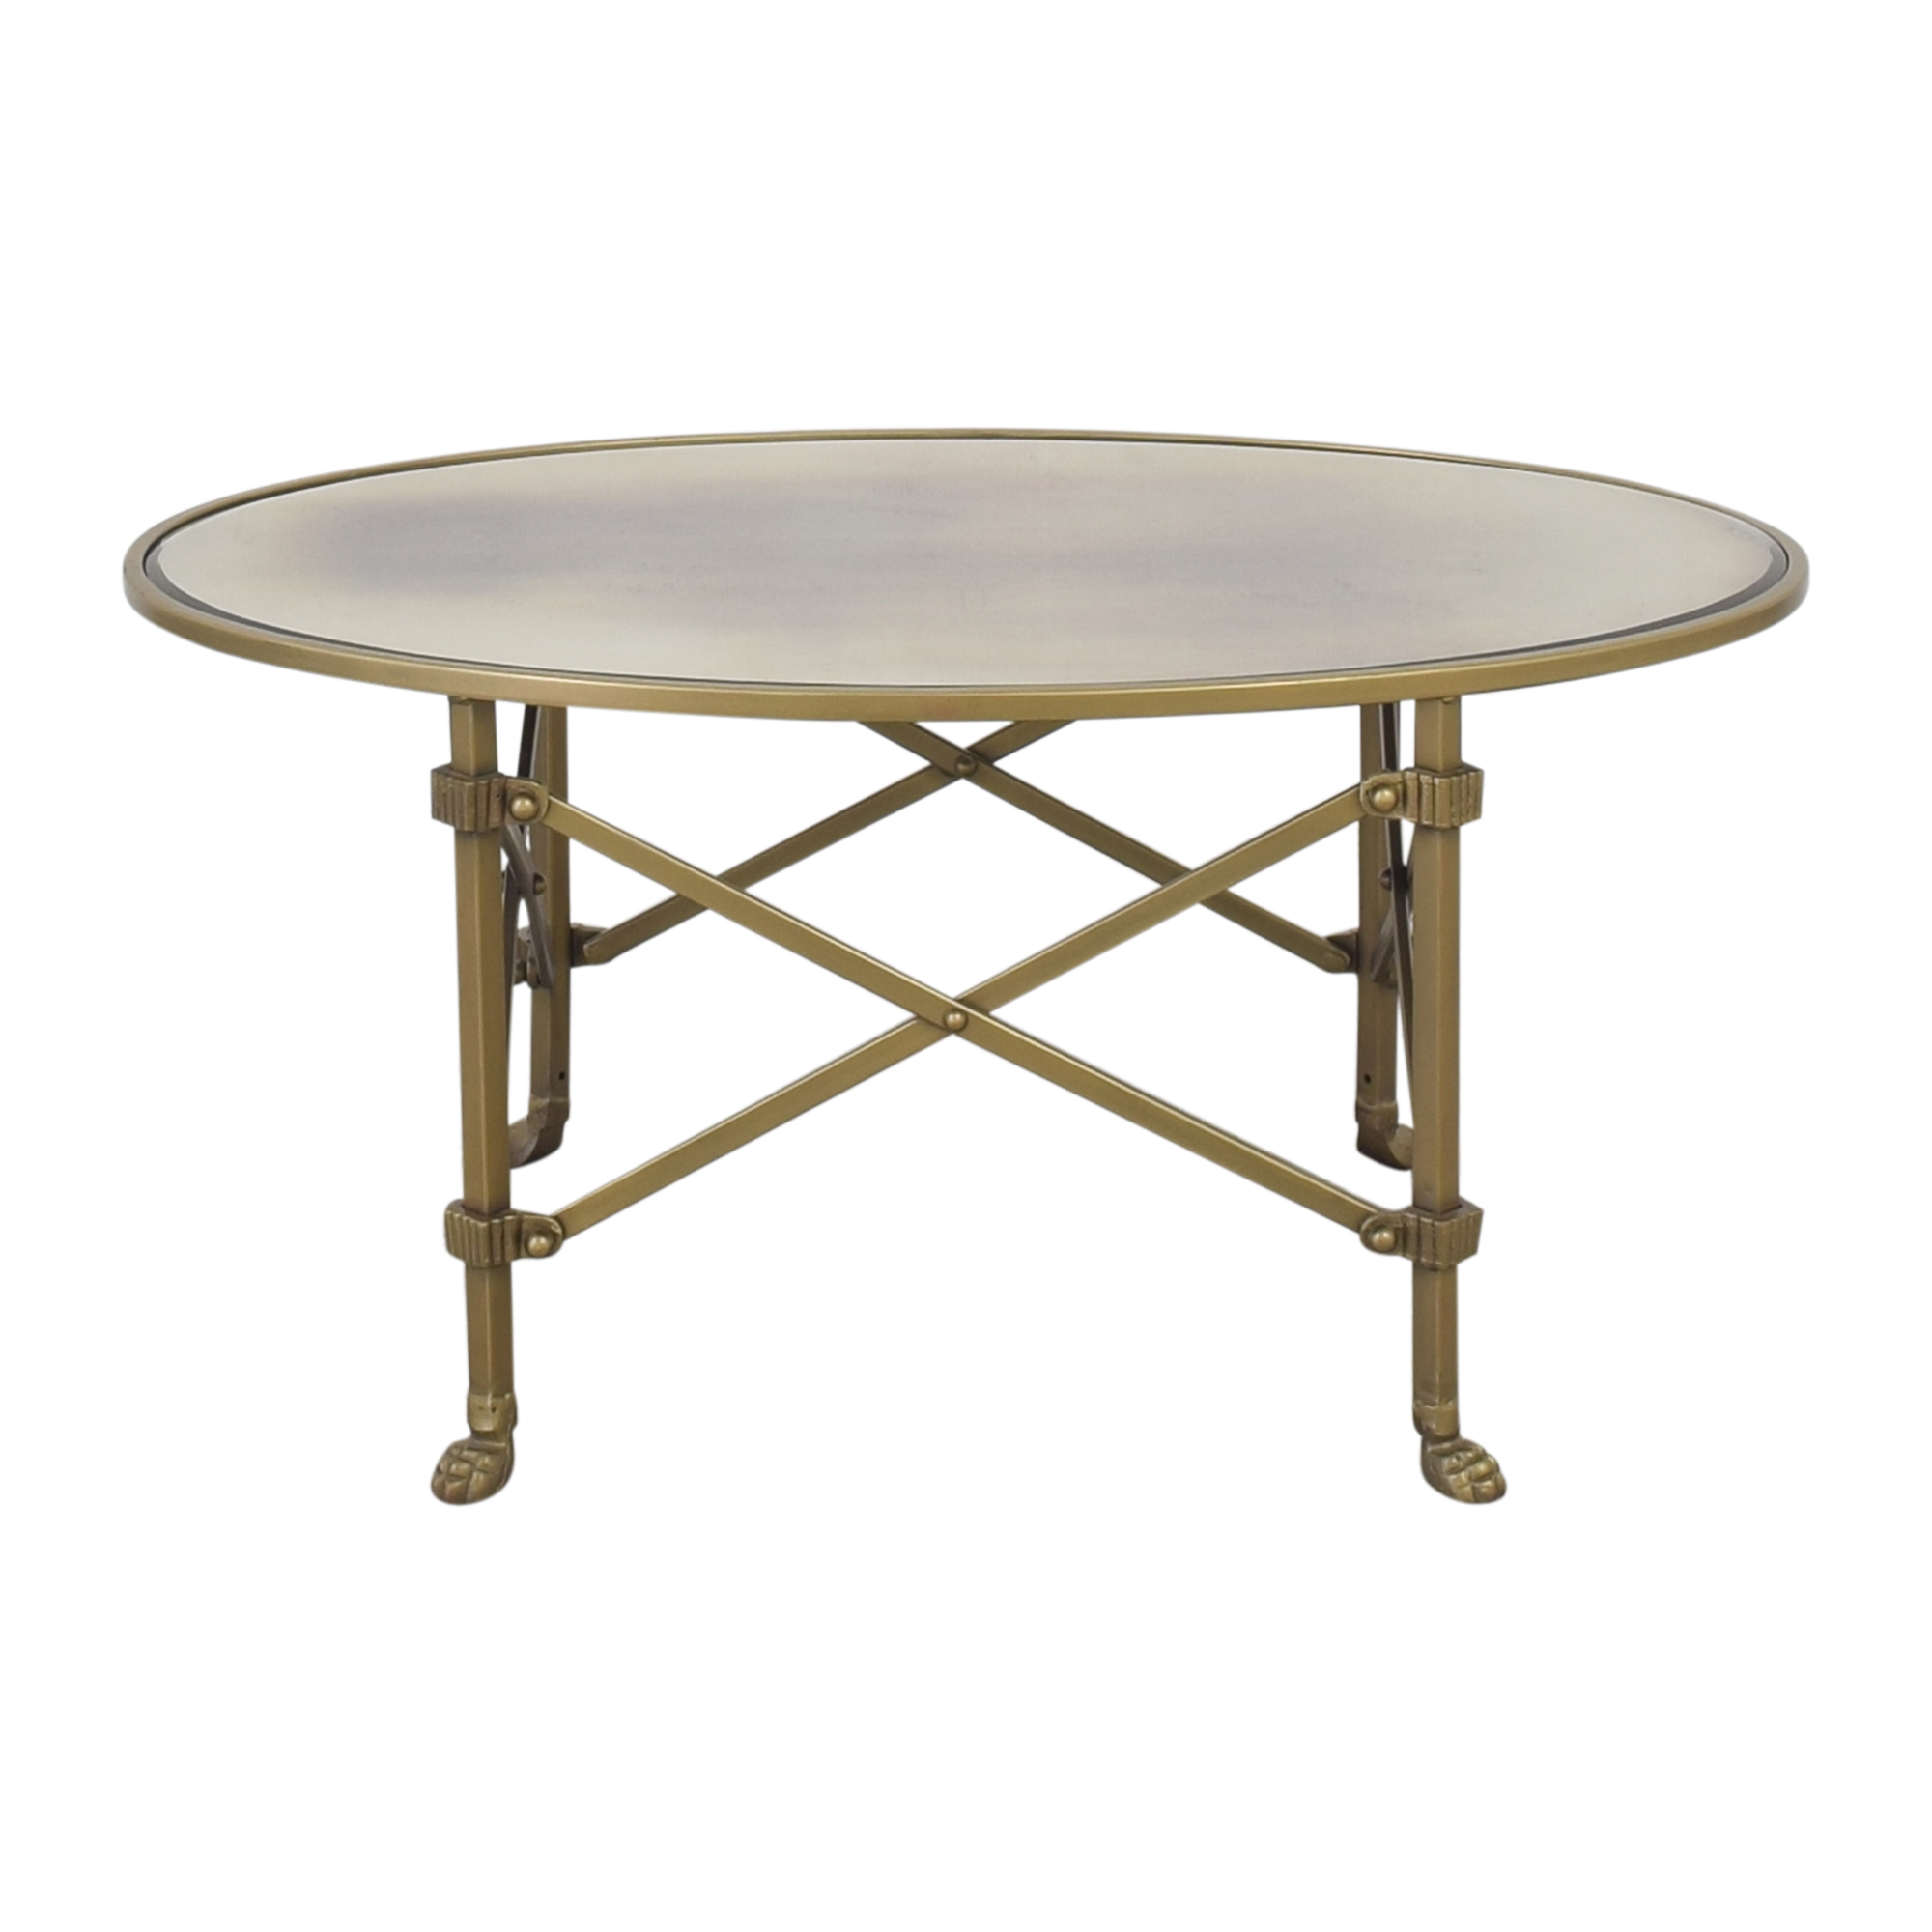 Ballard Designs Ballard Designs Olivia Cocktail Table nj